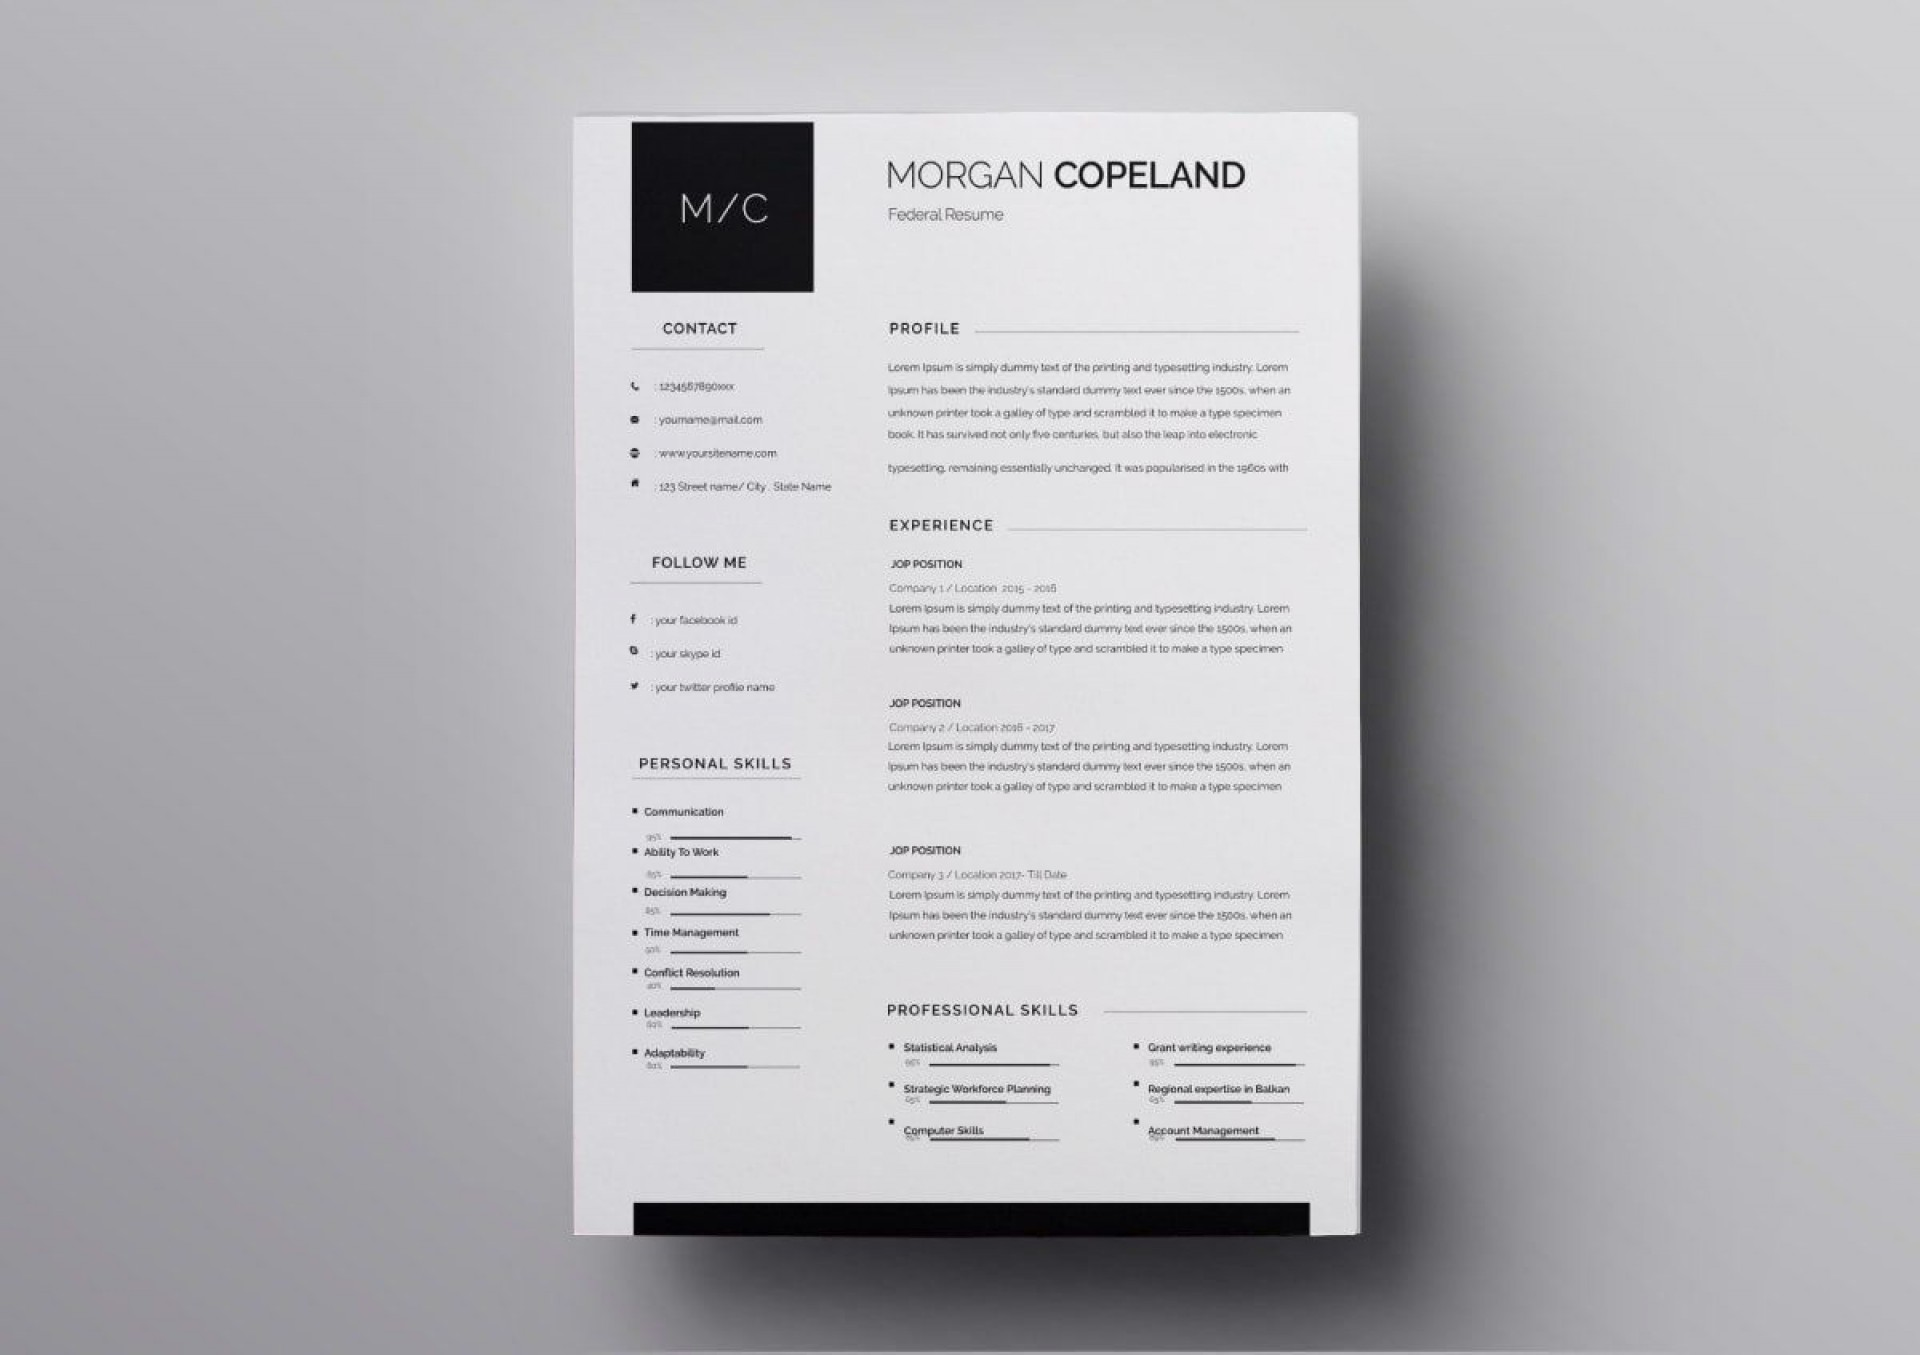 010 Excellent Download Resume Template Free Mac Sample  For1920